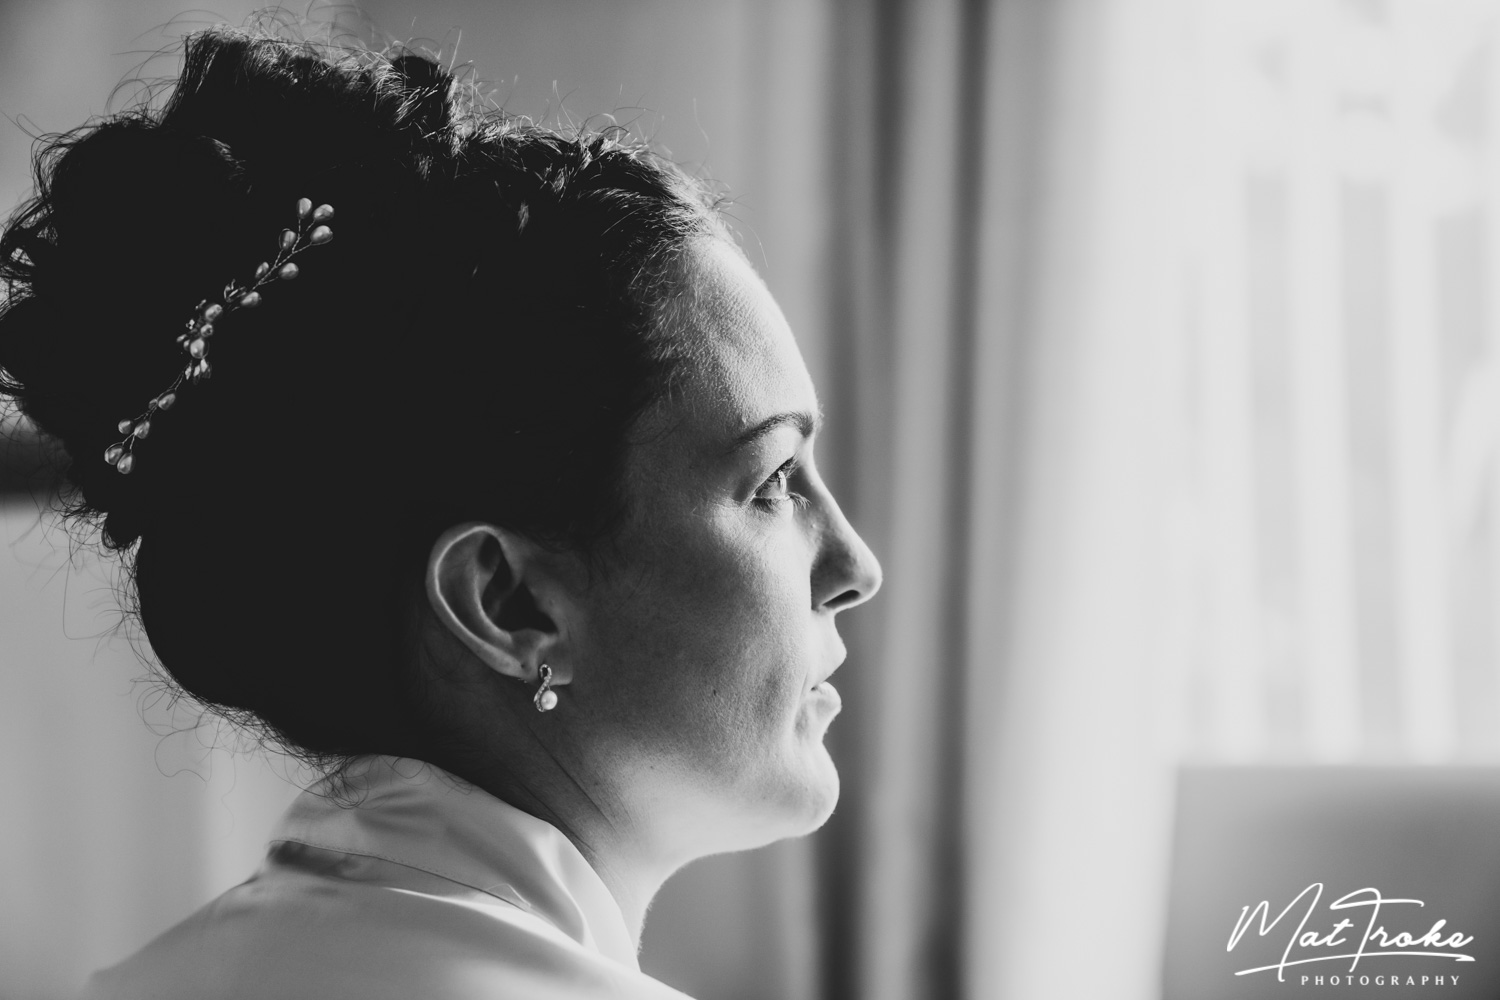 wentworth_rotherham_sheffield_church_bridal_black_white_portrait_prep_stunning_photographer_wedding_summer